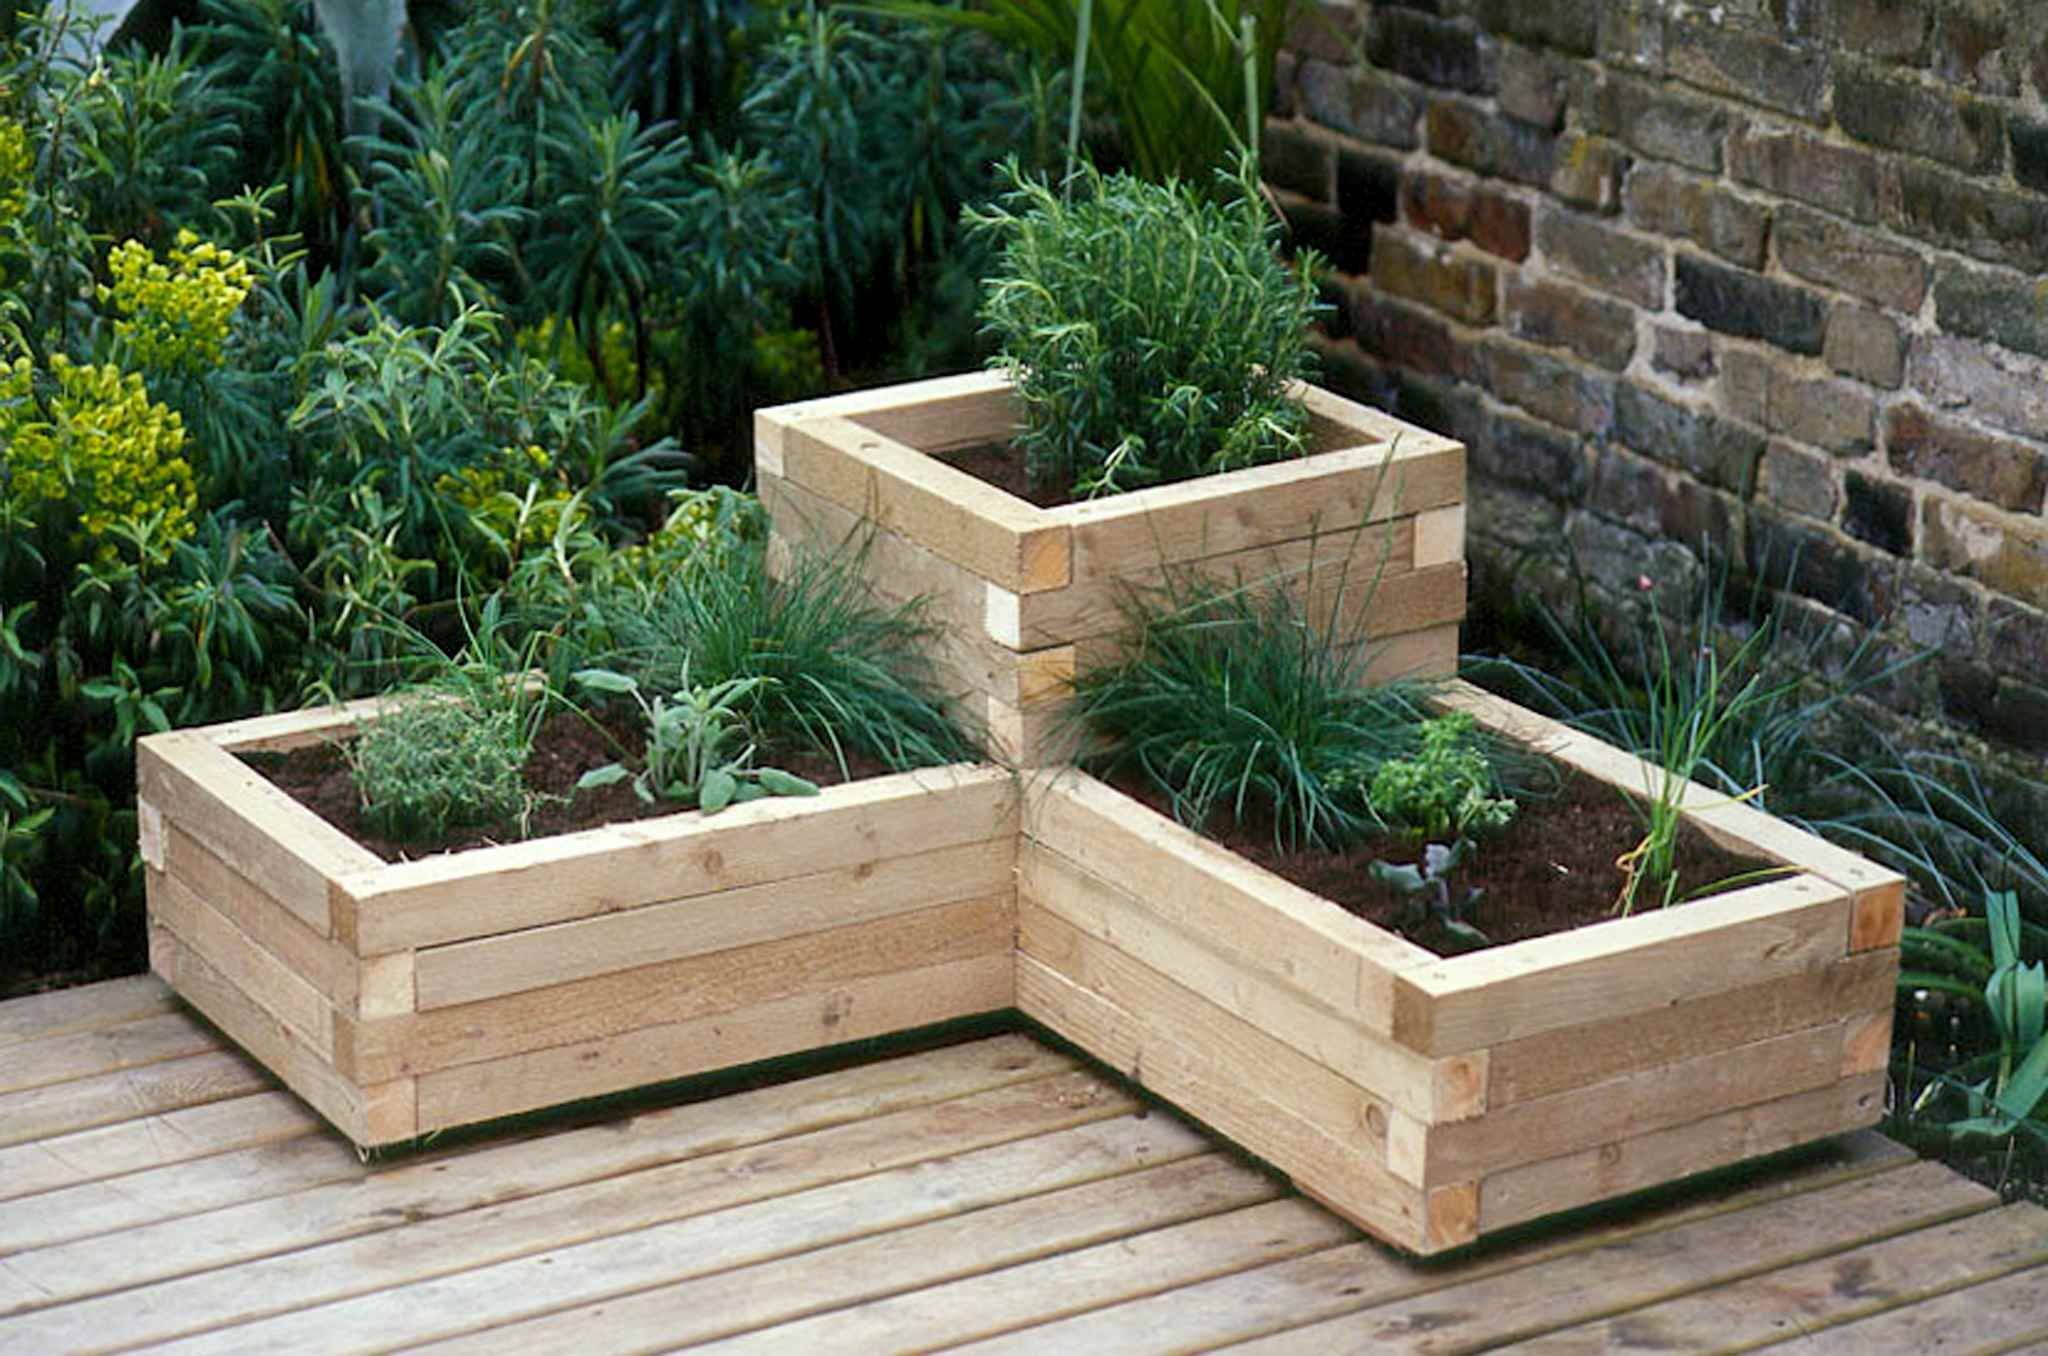 teak cast square with box planter decoration planters large boxes white flower garden pots and sale for iron liners trellis